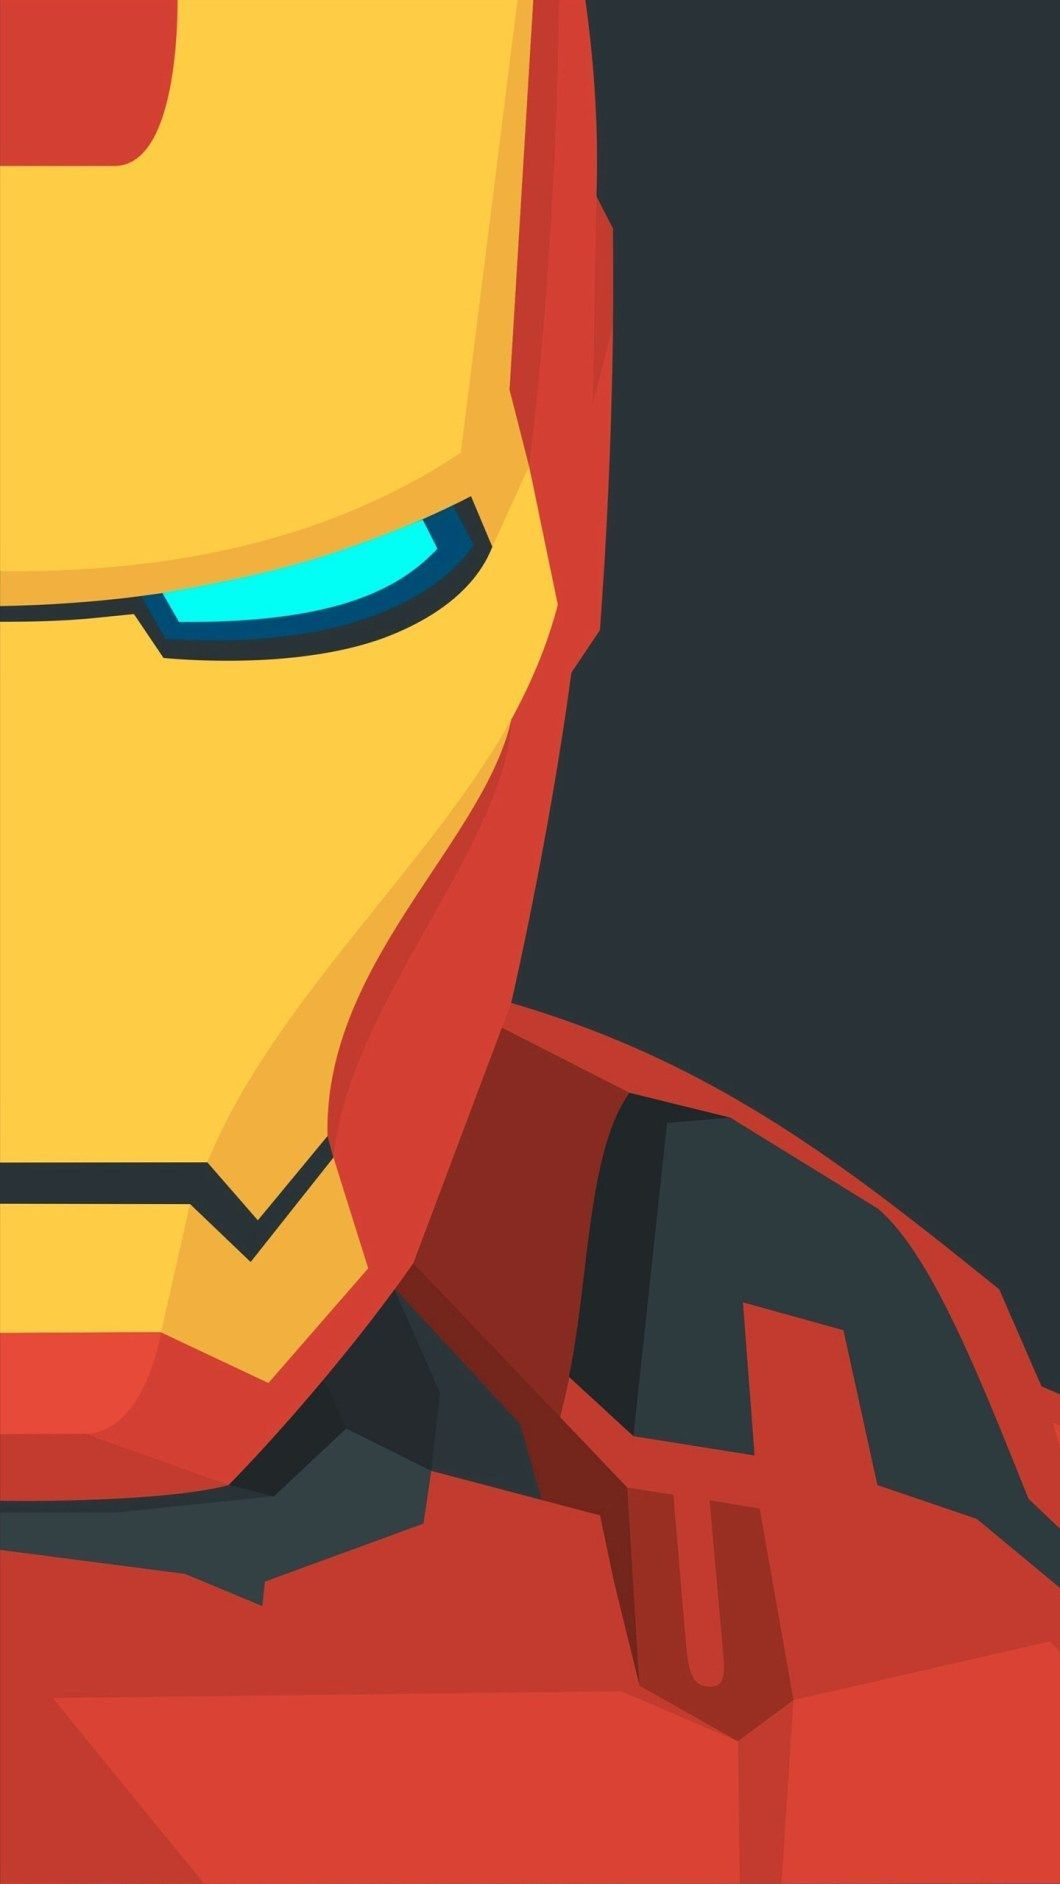 Download Iron Man Wallpaper Hd Iphone X Iron Man Art Iron Man Painting Iron Man Hd Wallpaper